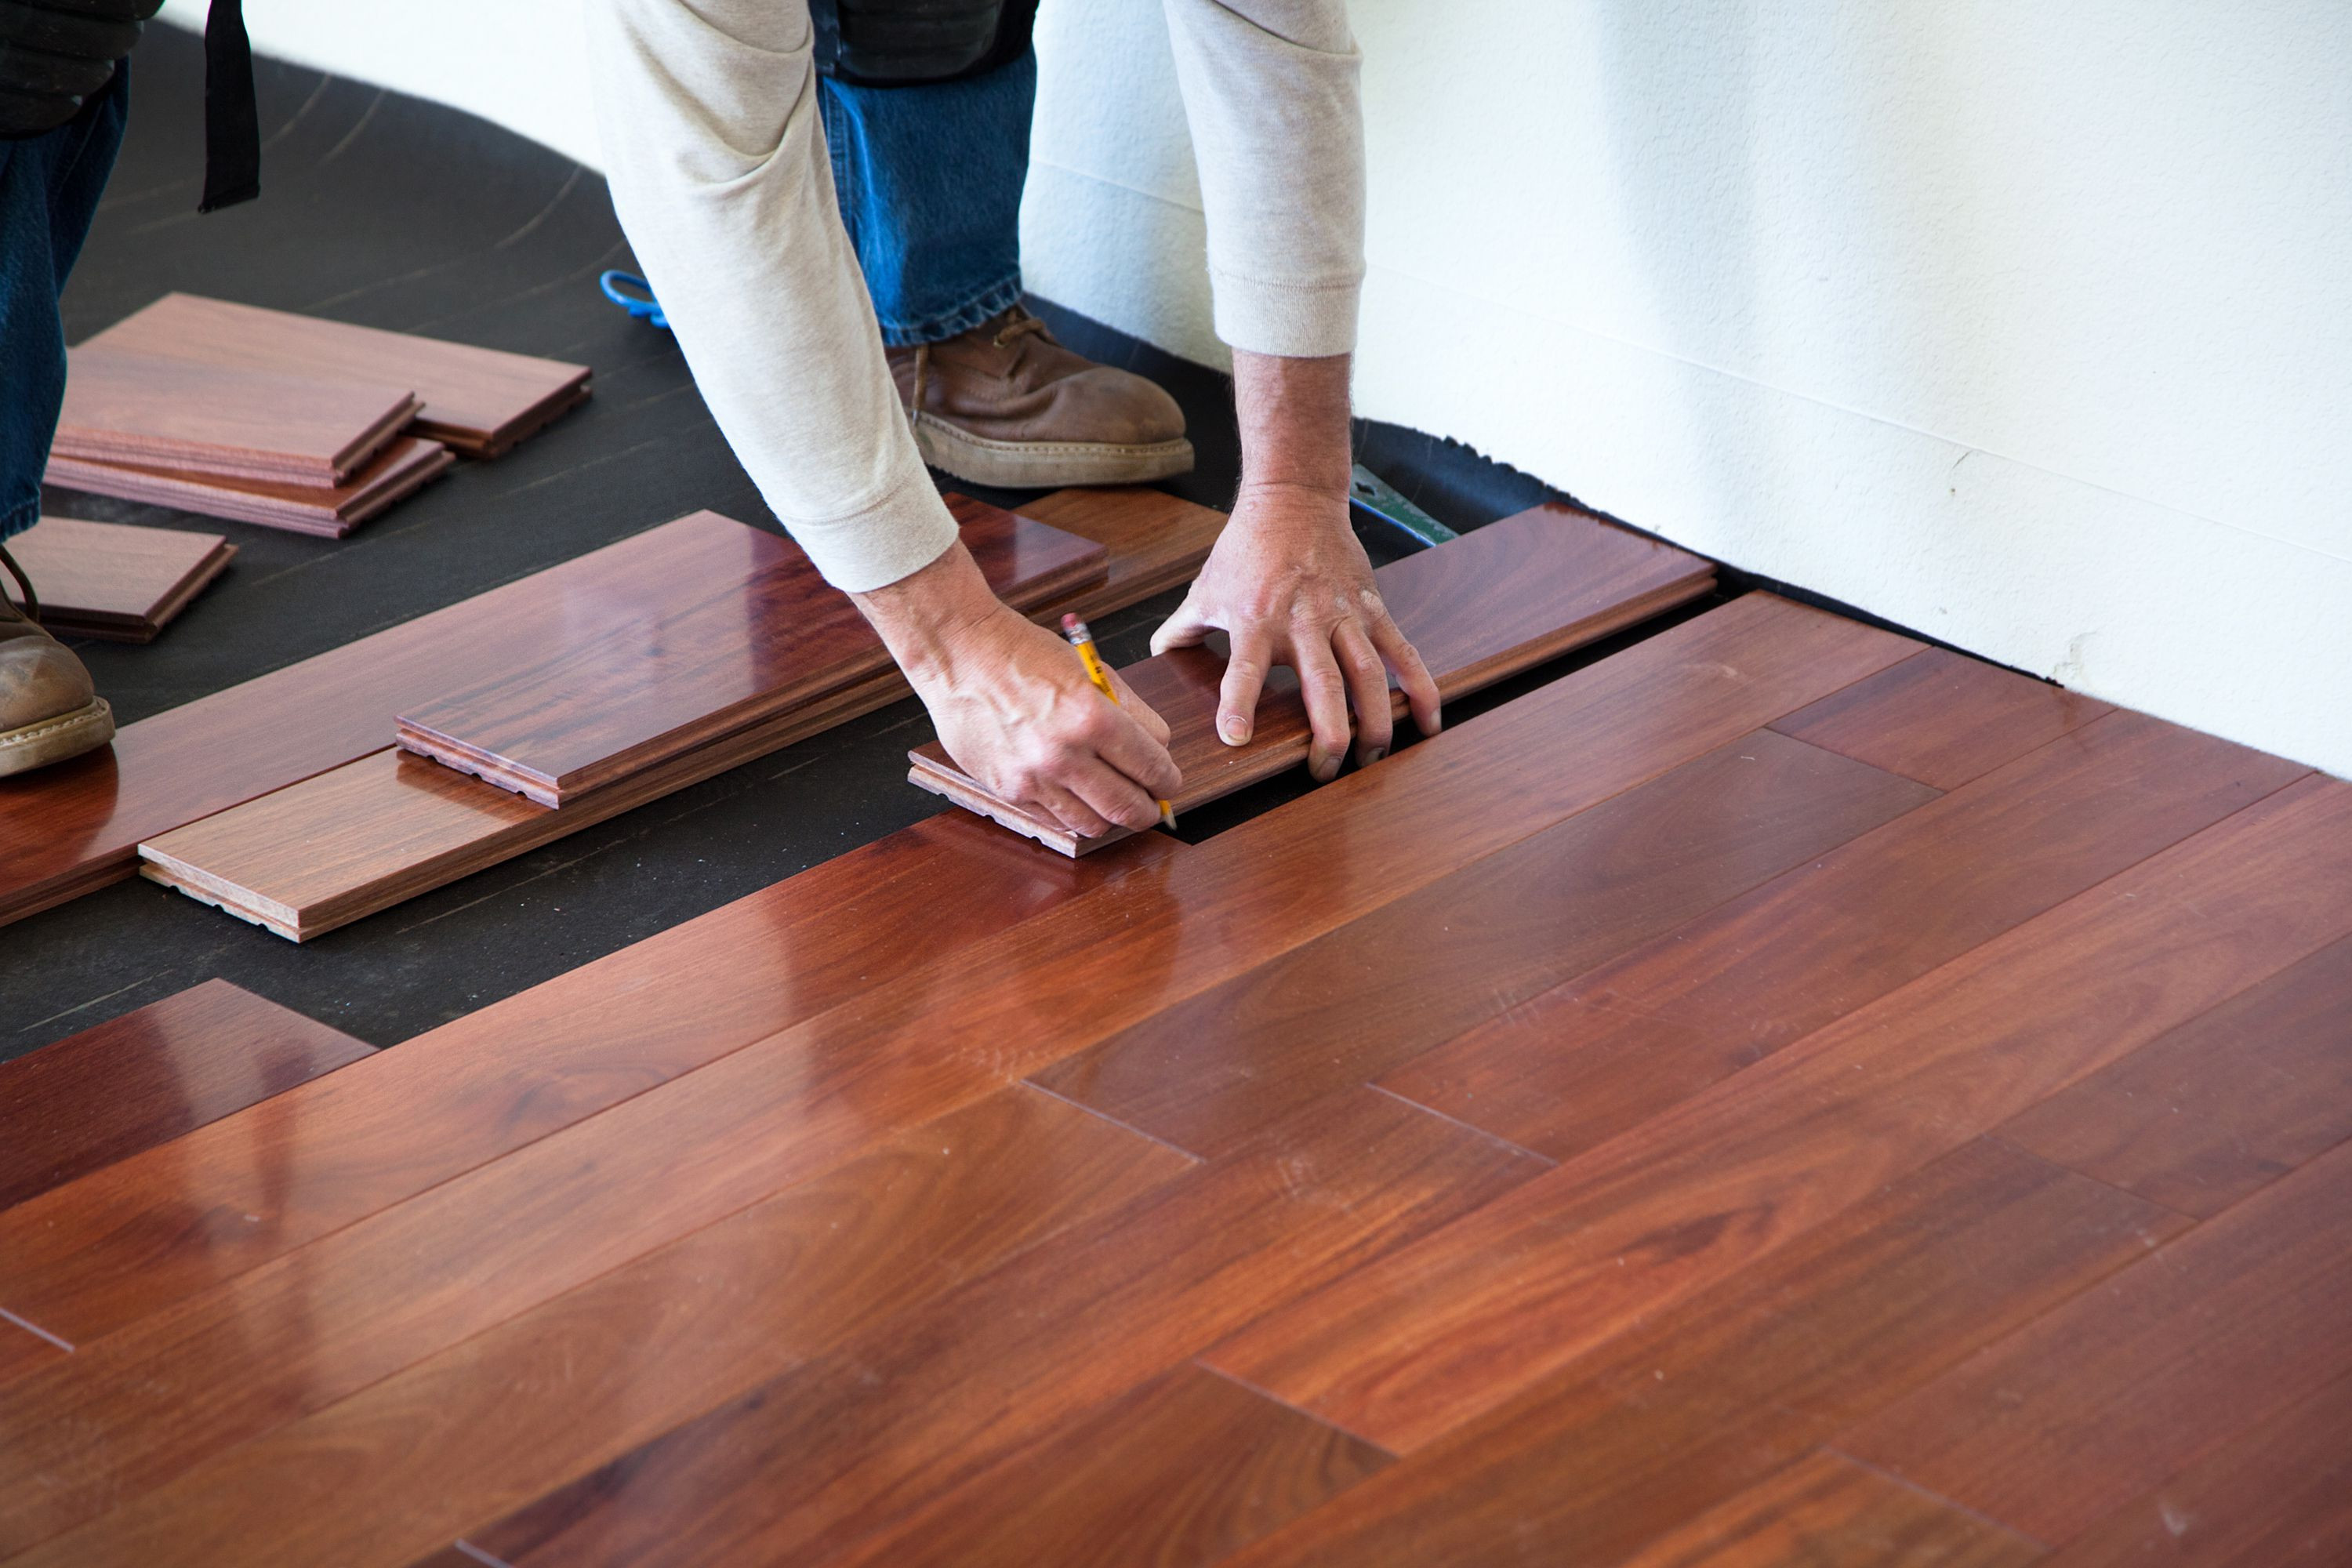 Hardwood Floor Scratch Filler Of the Subfloor is the Foundation Of A Good Floor Pertaining to Installing Hardwood Floor 170040982 582b748c5f9b58d5b17d0c58